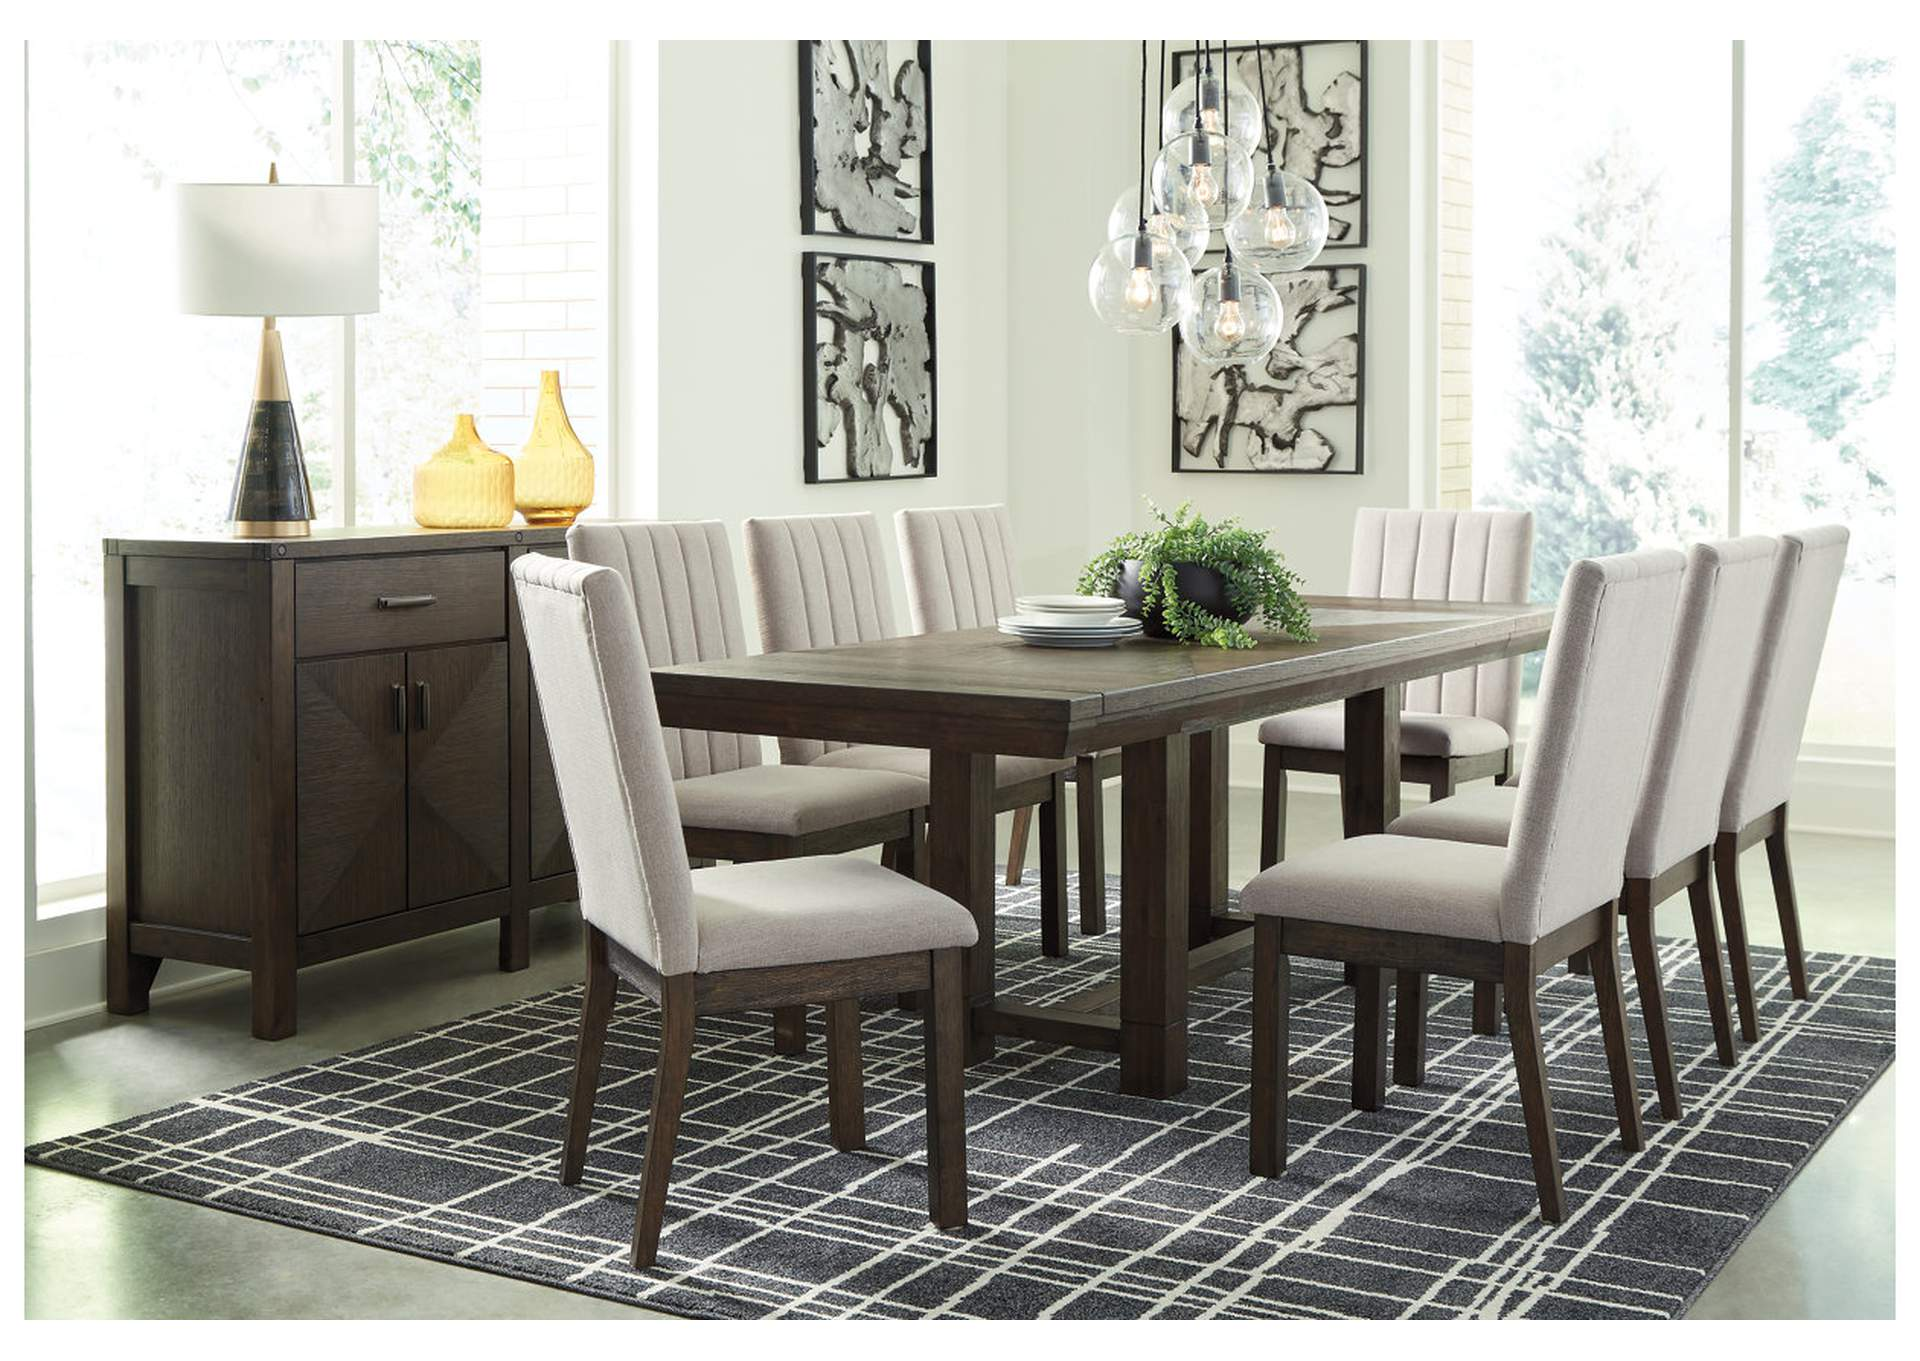 Dellbeck Brown Dining Table w/8 Side Chair,Millennium